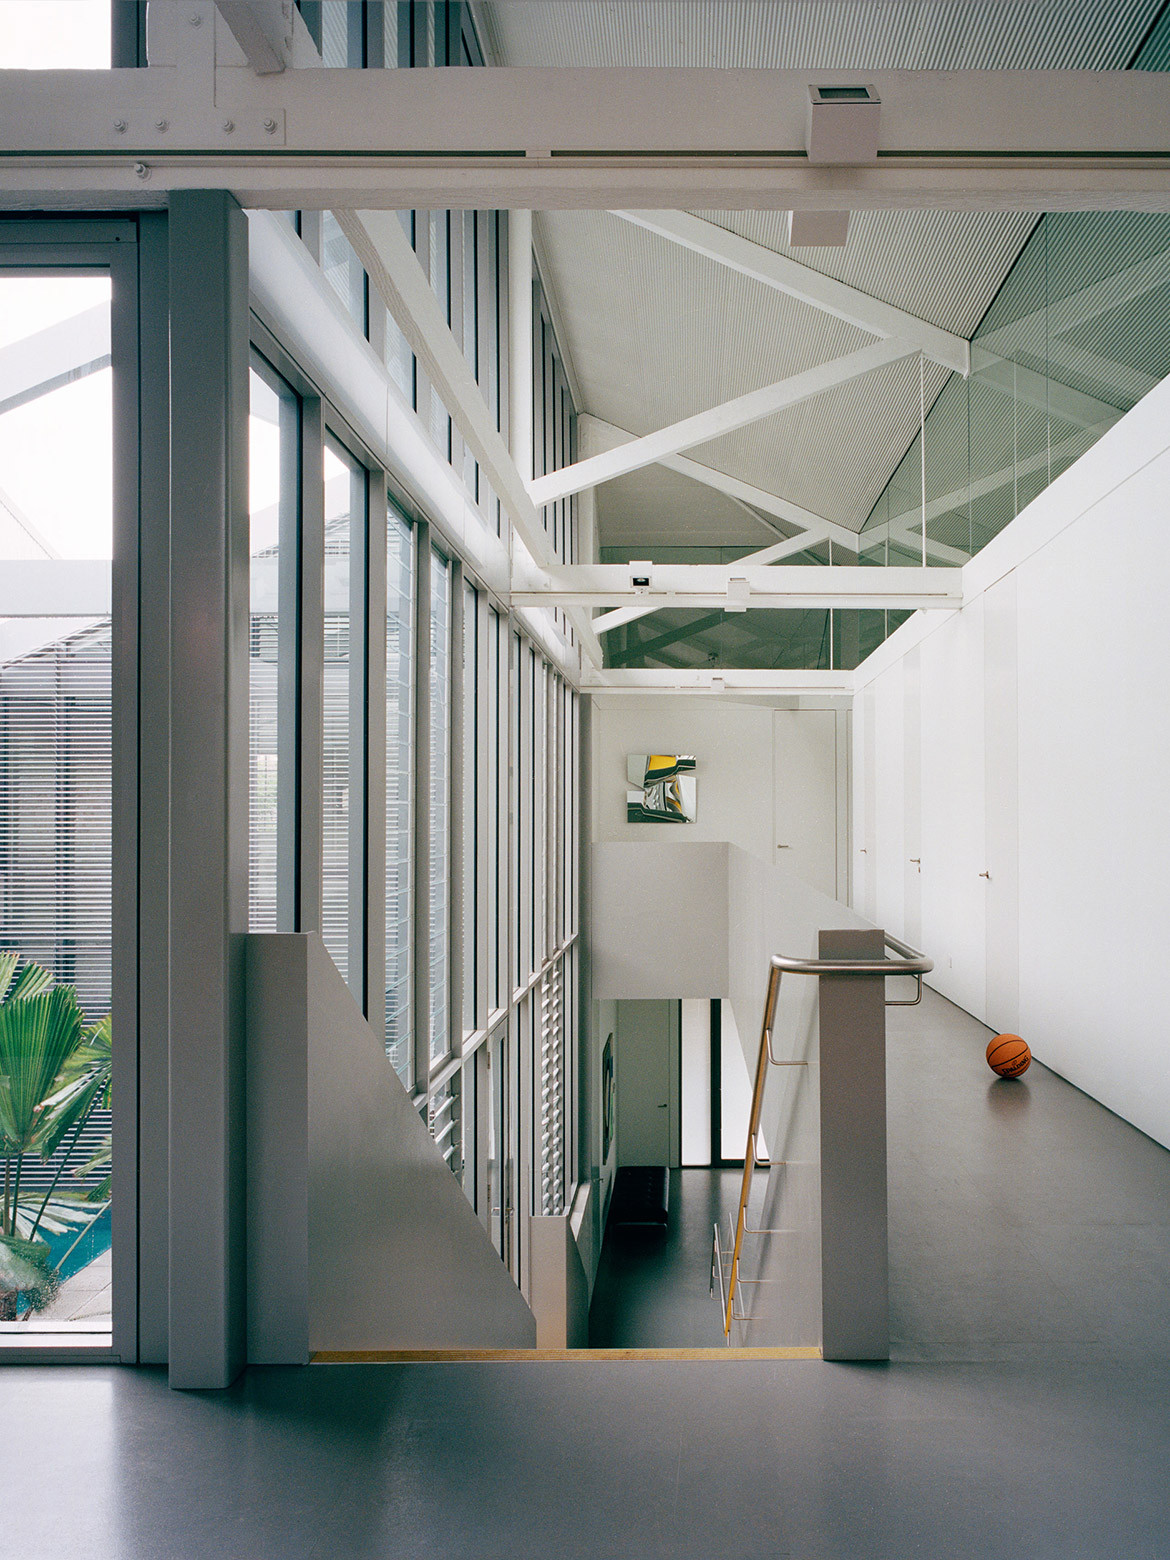 Modern industrial minimalist interior design aesthetic of Redfern Warehouse by Ian Moore Architects